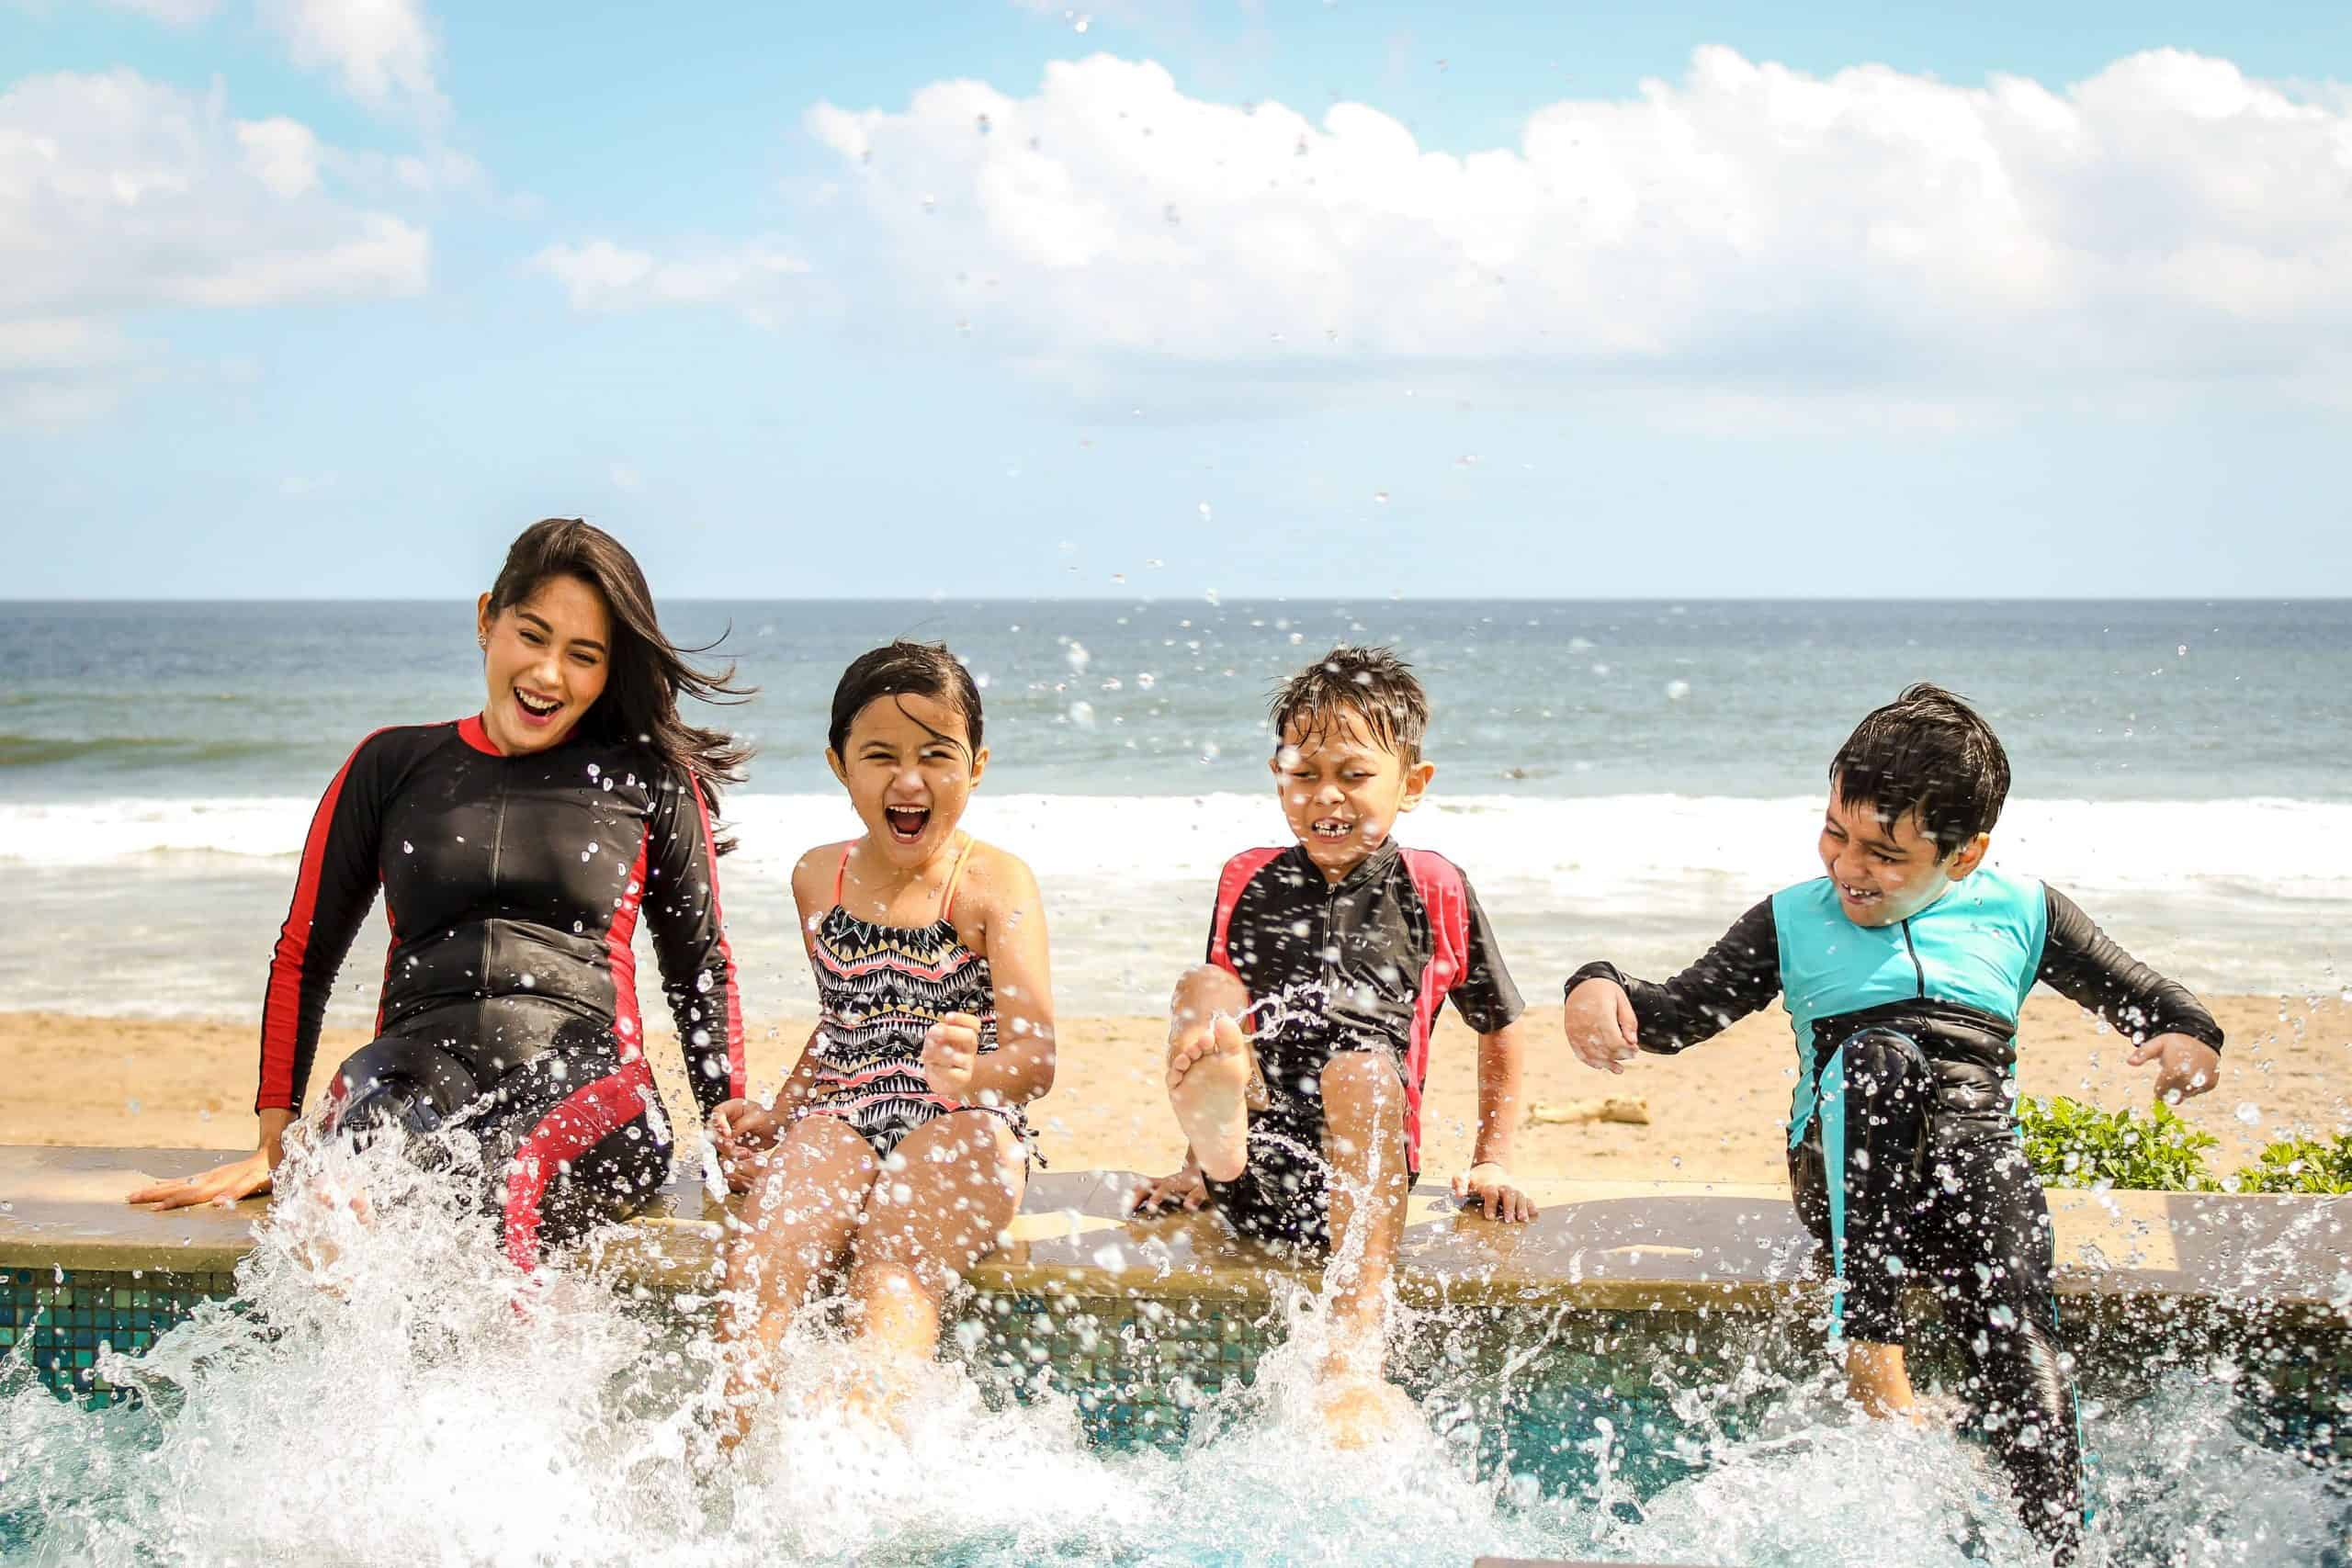 Kids playing in the water in summer